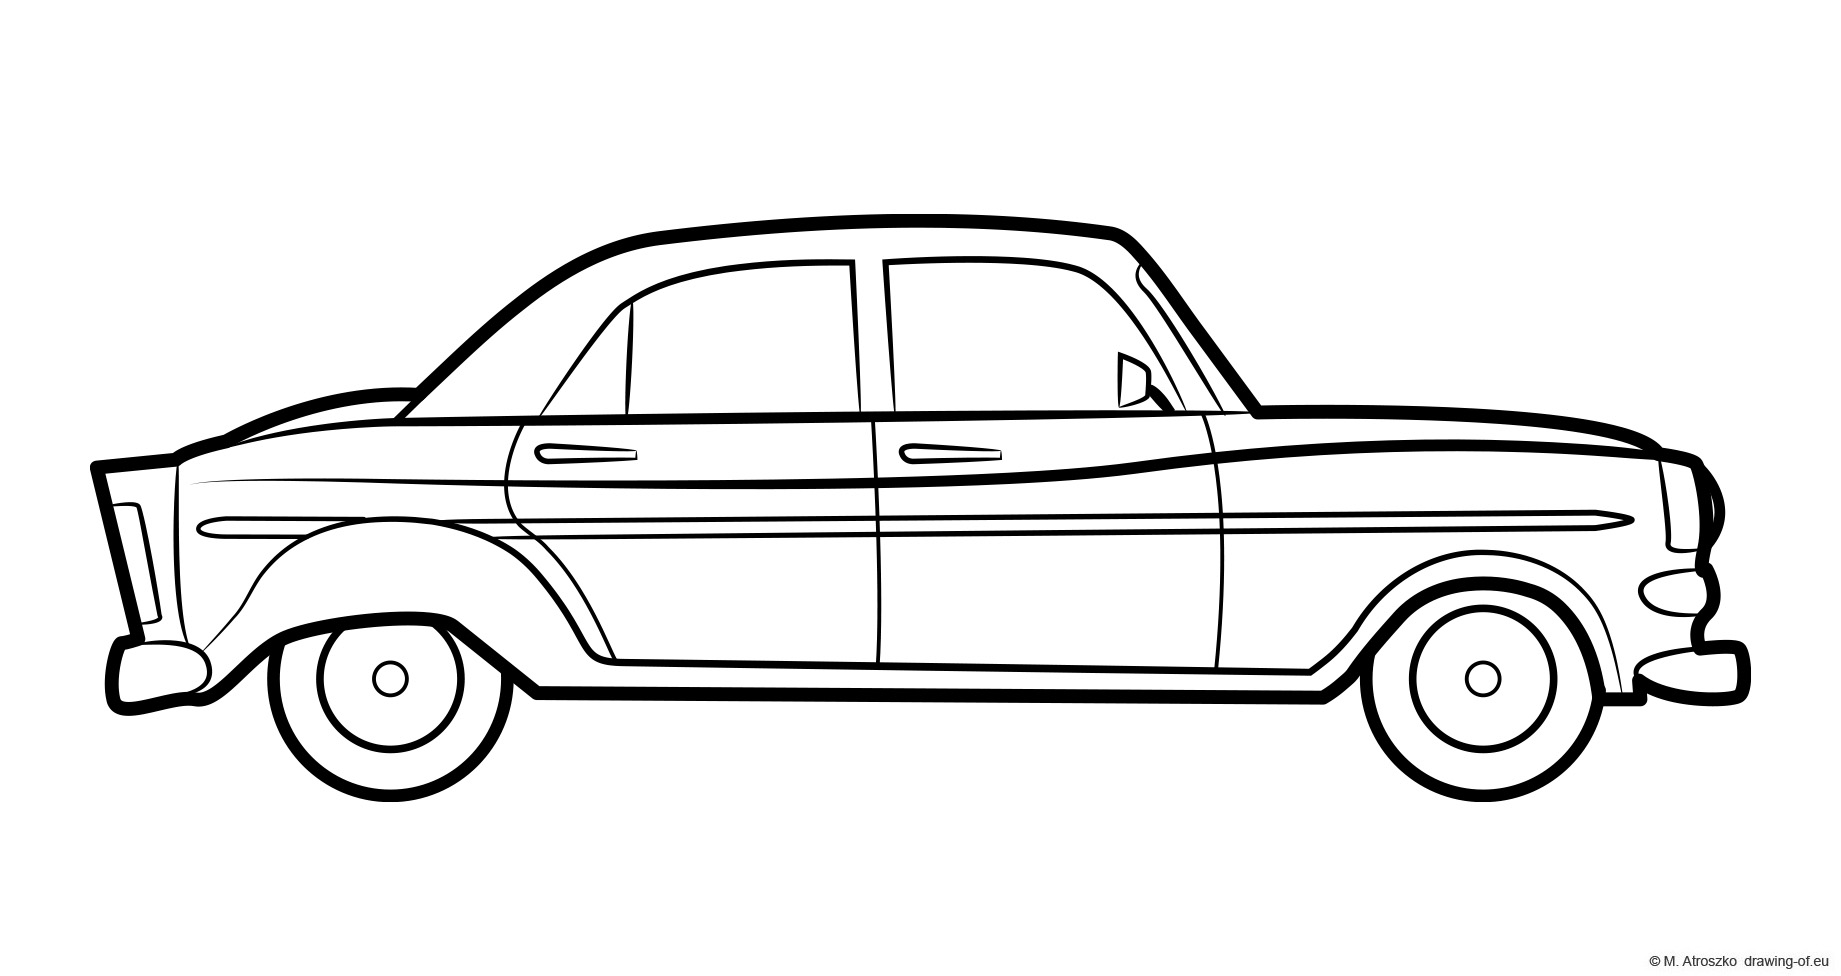 Old car drawing - classic chevrolet, 50's